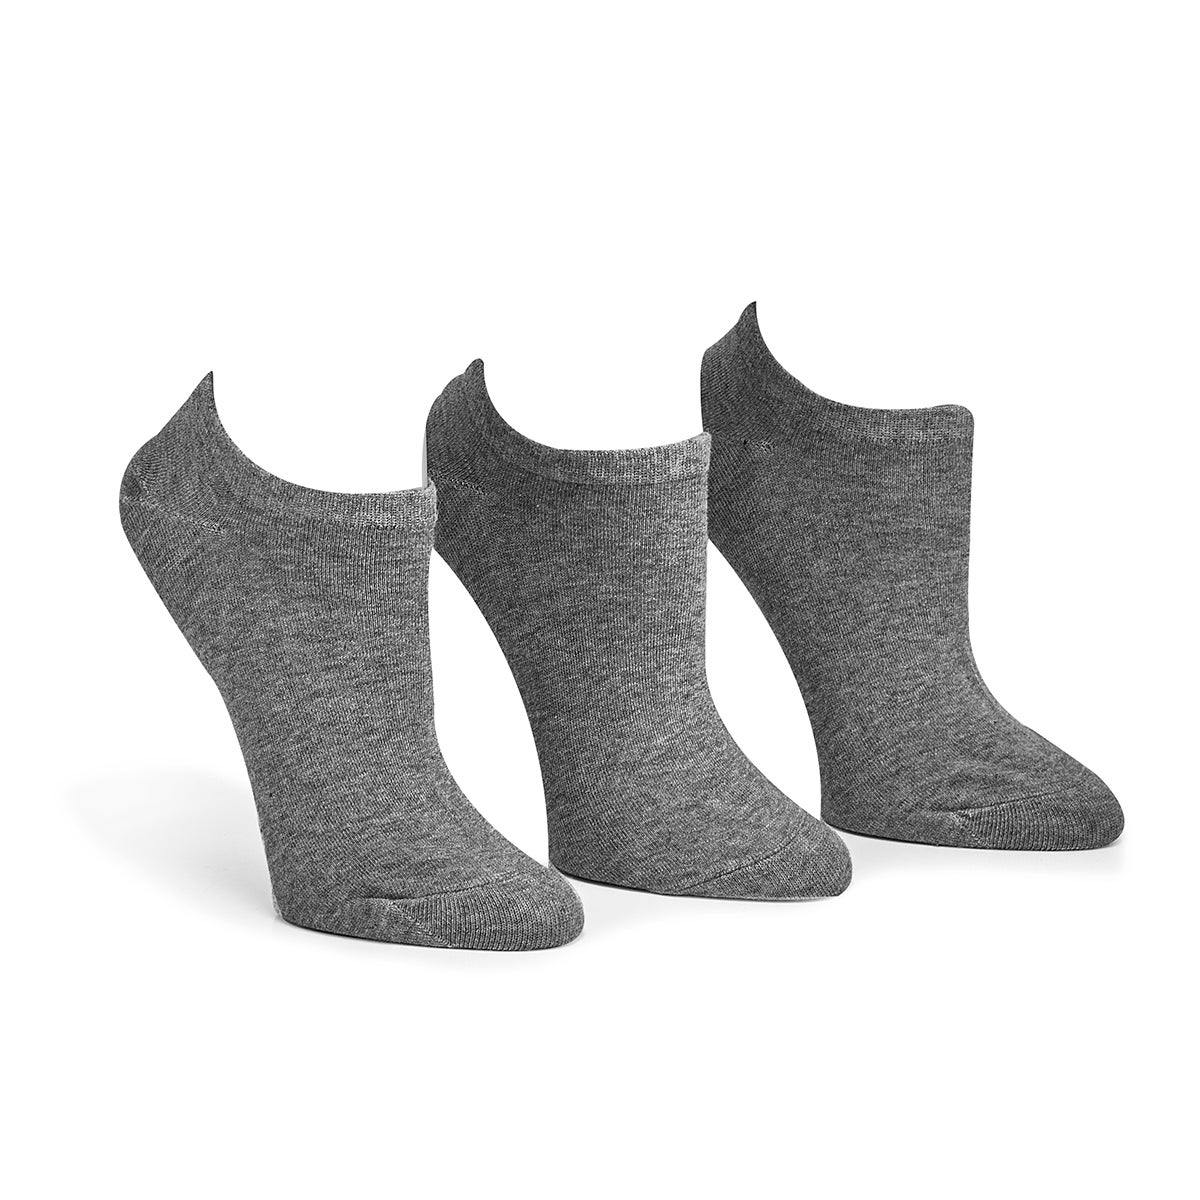 Lds Converse grey no show sock - 3 pk